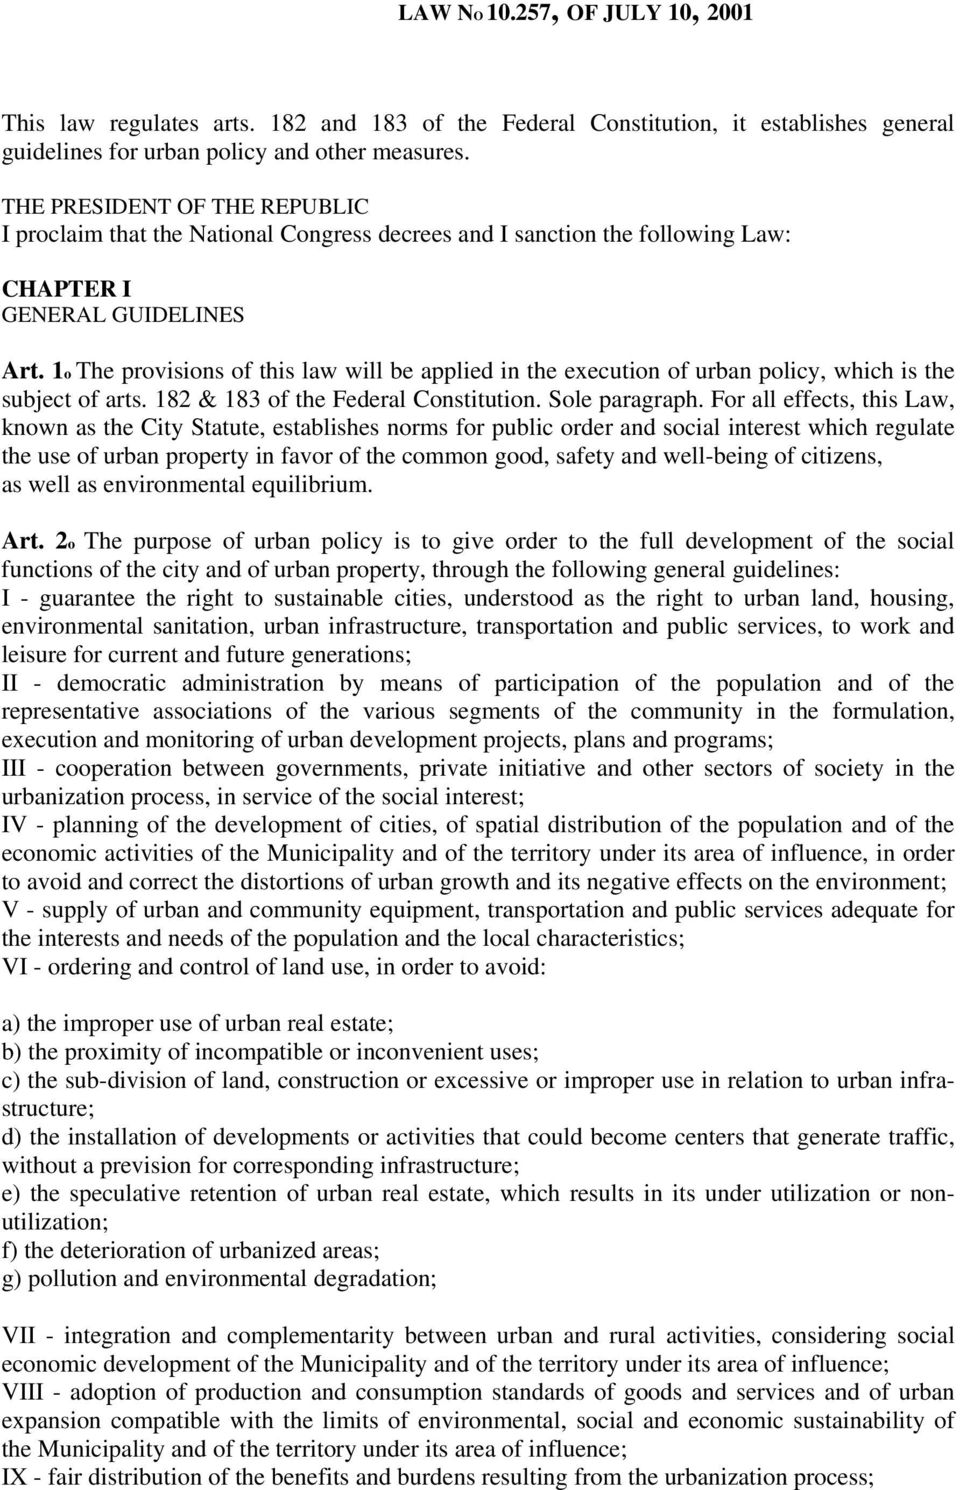 1o The provisions of this law will be applied in the execution of urban policy, which is the subject of arts. 182 & 183 of the Federal Constitution. Sole paragraph.